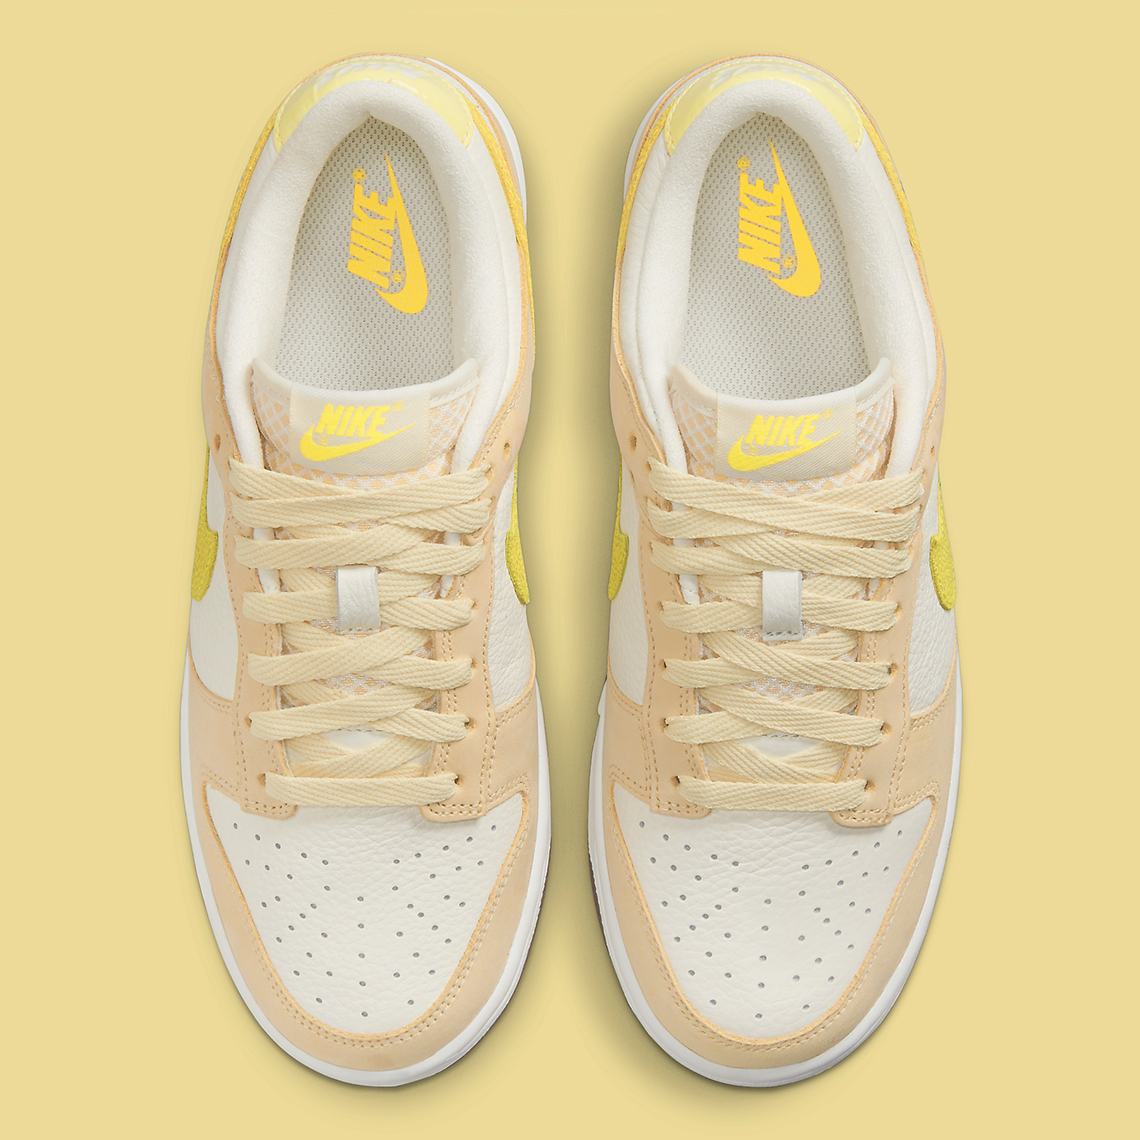 nike-dunk-low-lemon-drop-DJ6902-700-7.jpg?w=1140